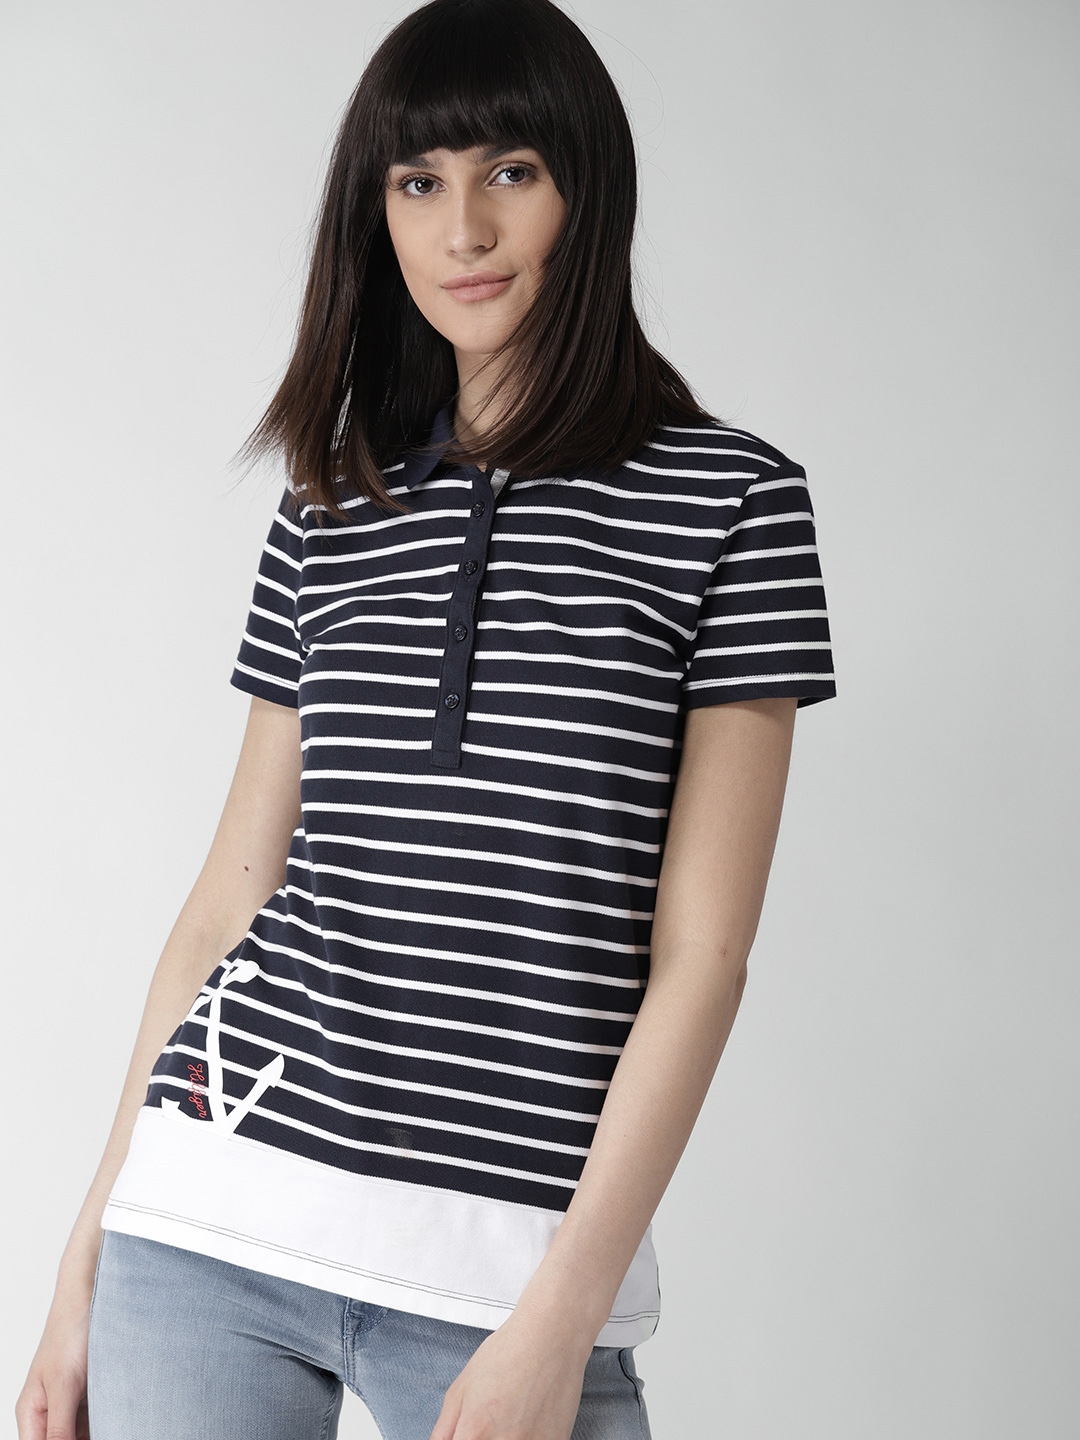 63dbbd91 Buy Tommy Hilfiger Women Navy Blue & White Striped Polo Collar T ...